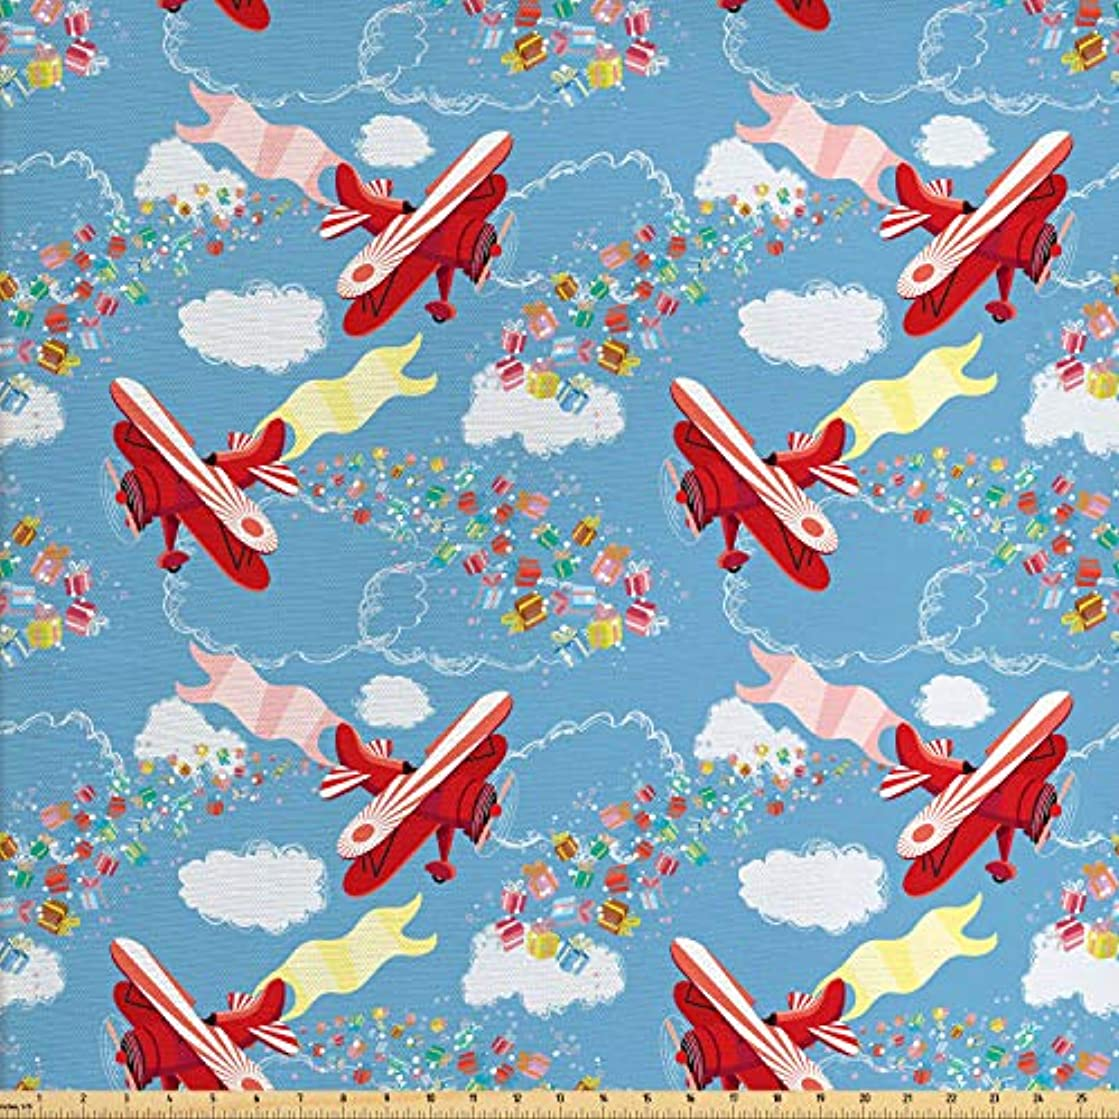 Ambesonne Airplane Fabric by The Yard, Retro Biplanes with Pennants Throwing Present Boxes Announcement Celebration Art, Decorative Fabric for Upholstery and Home Accents, 3 Yards, Multicolor